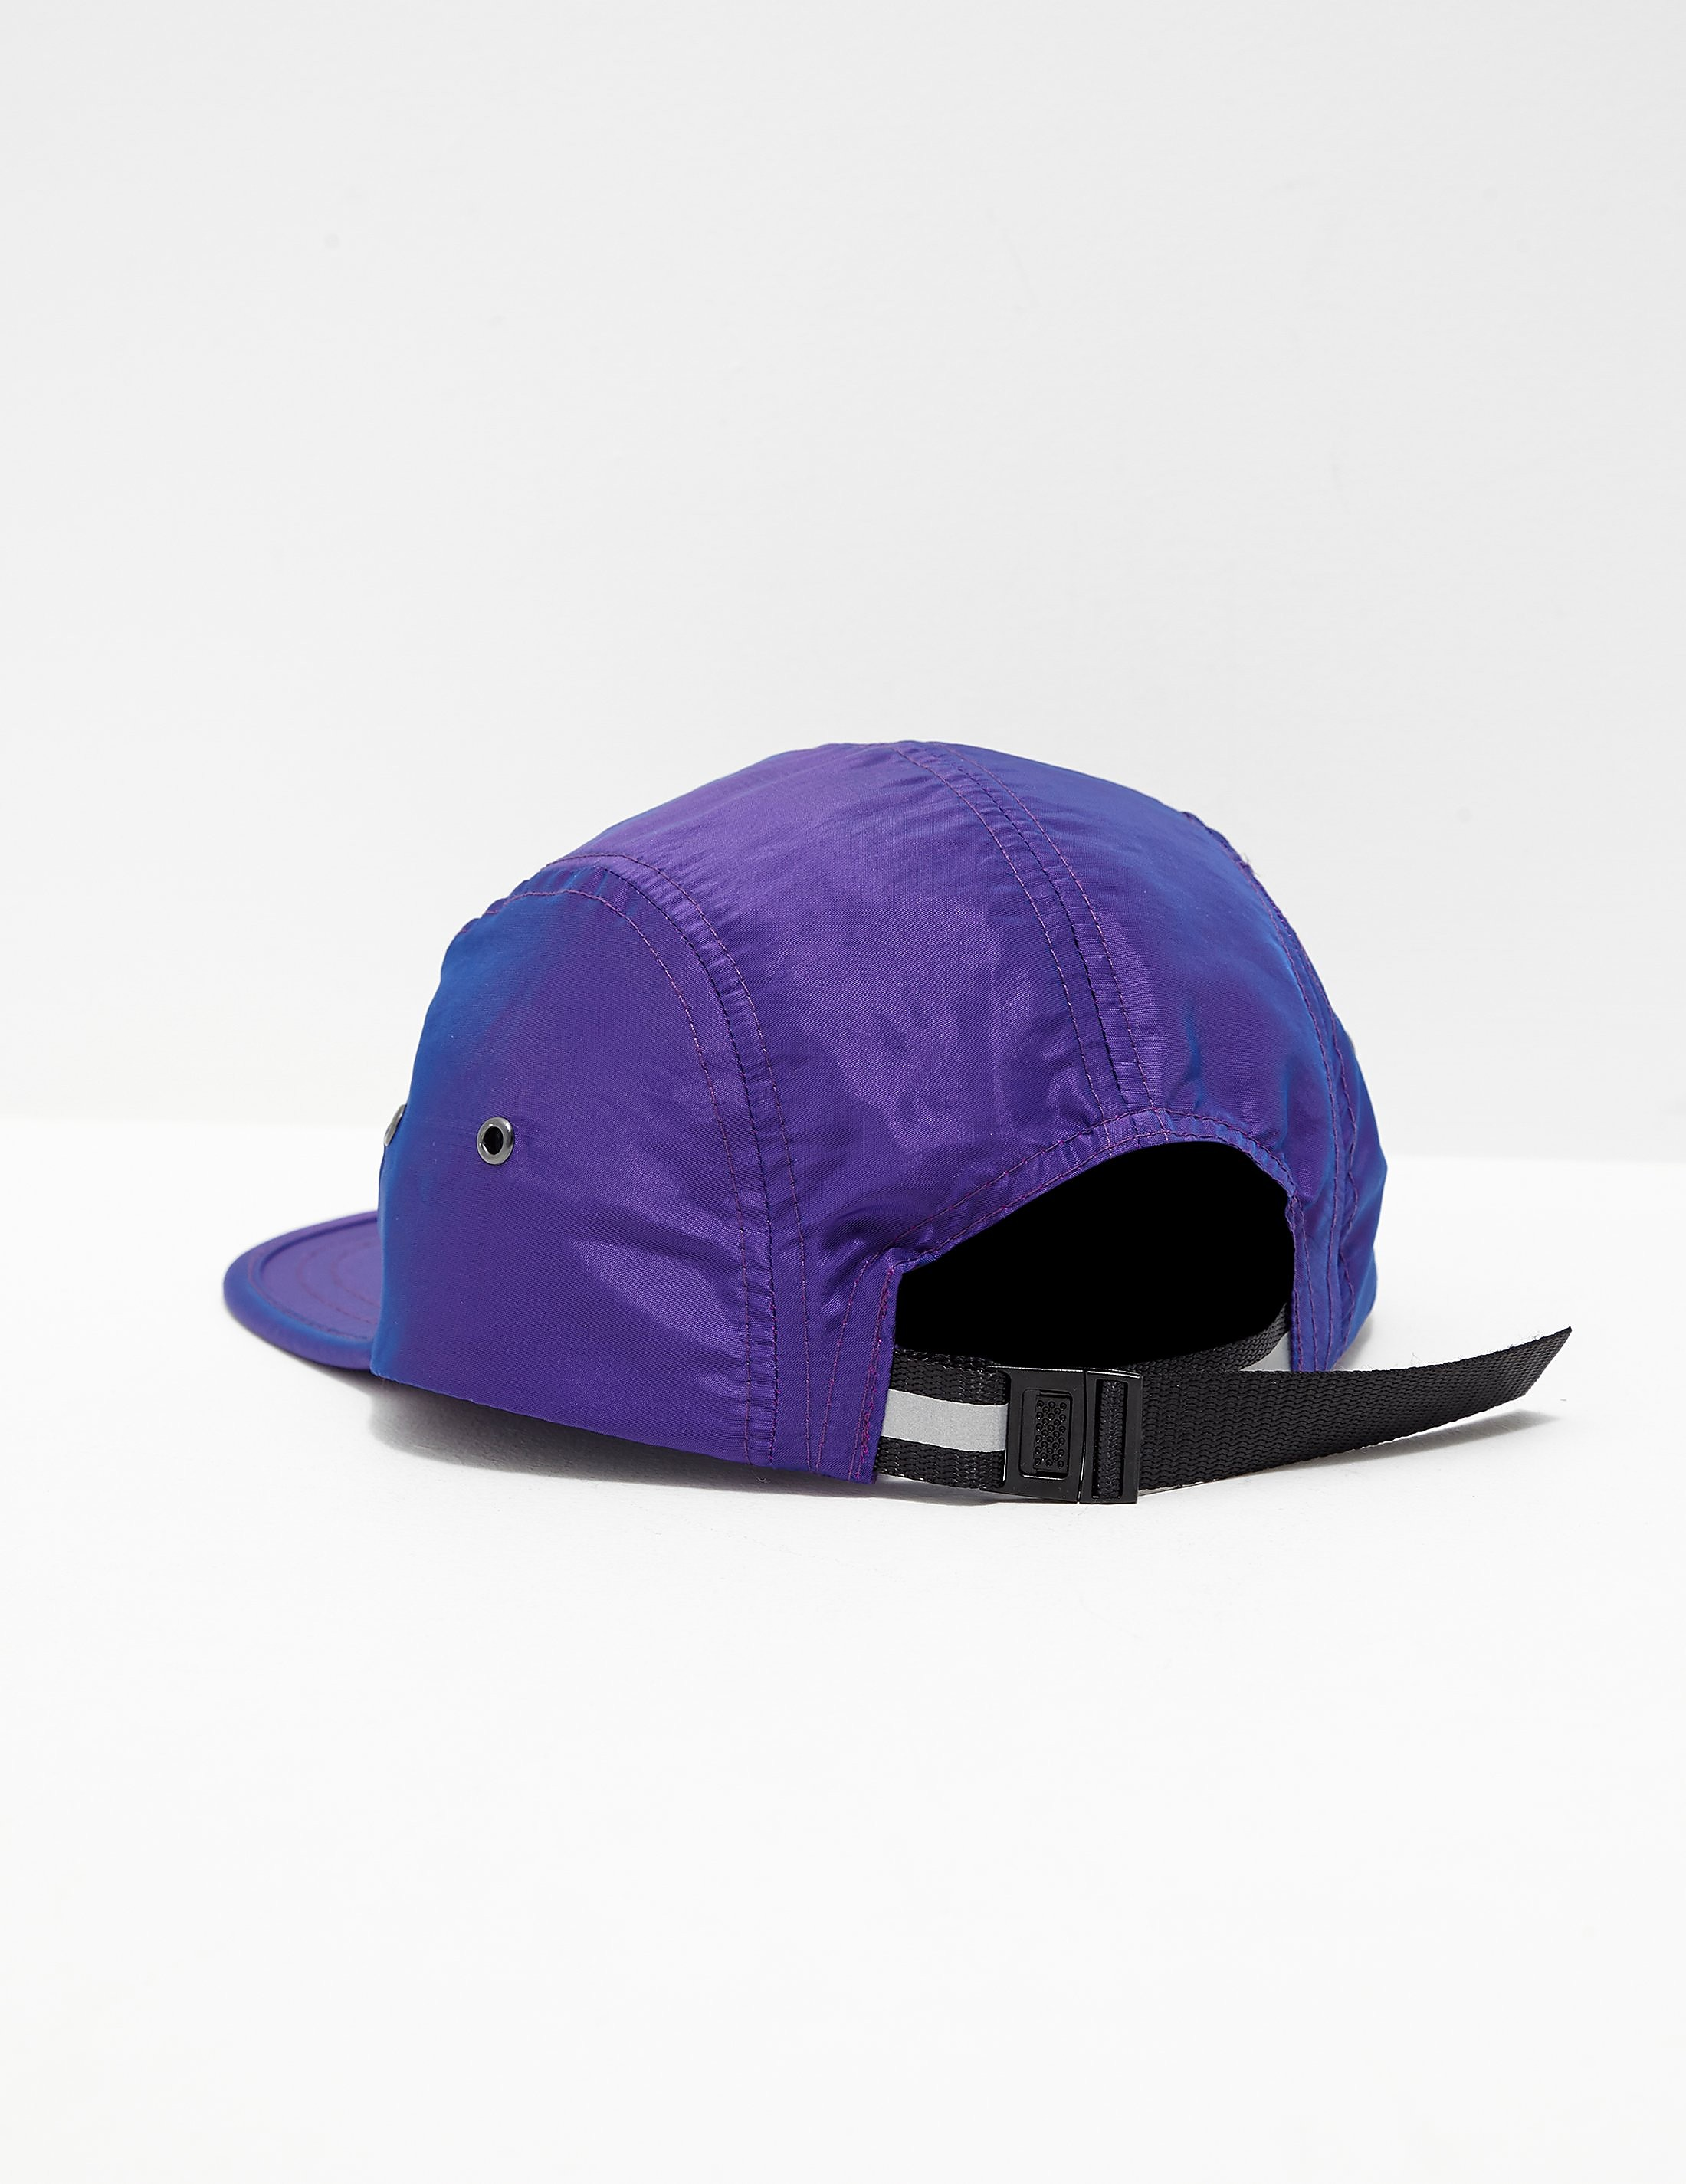 Billionaire Boys Club Iridescent Cap